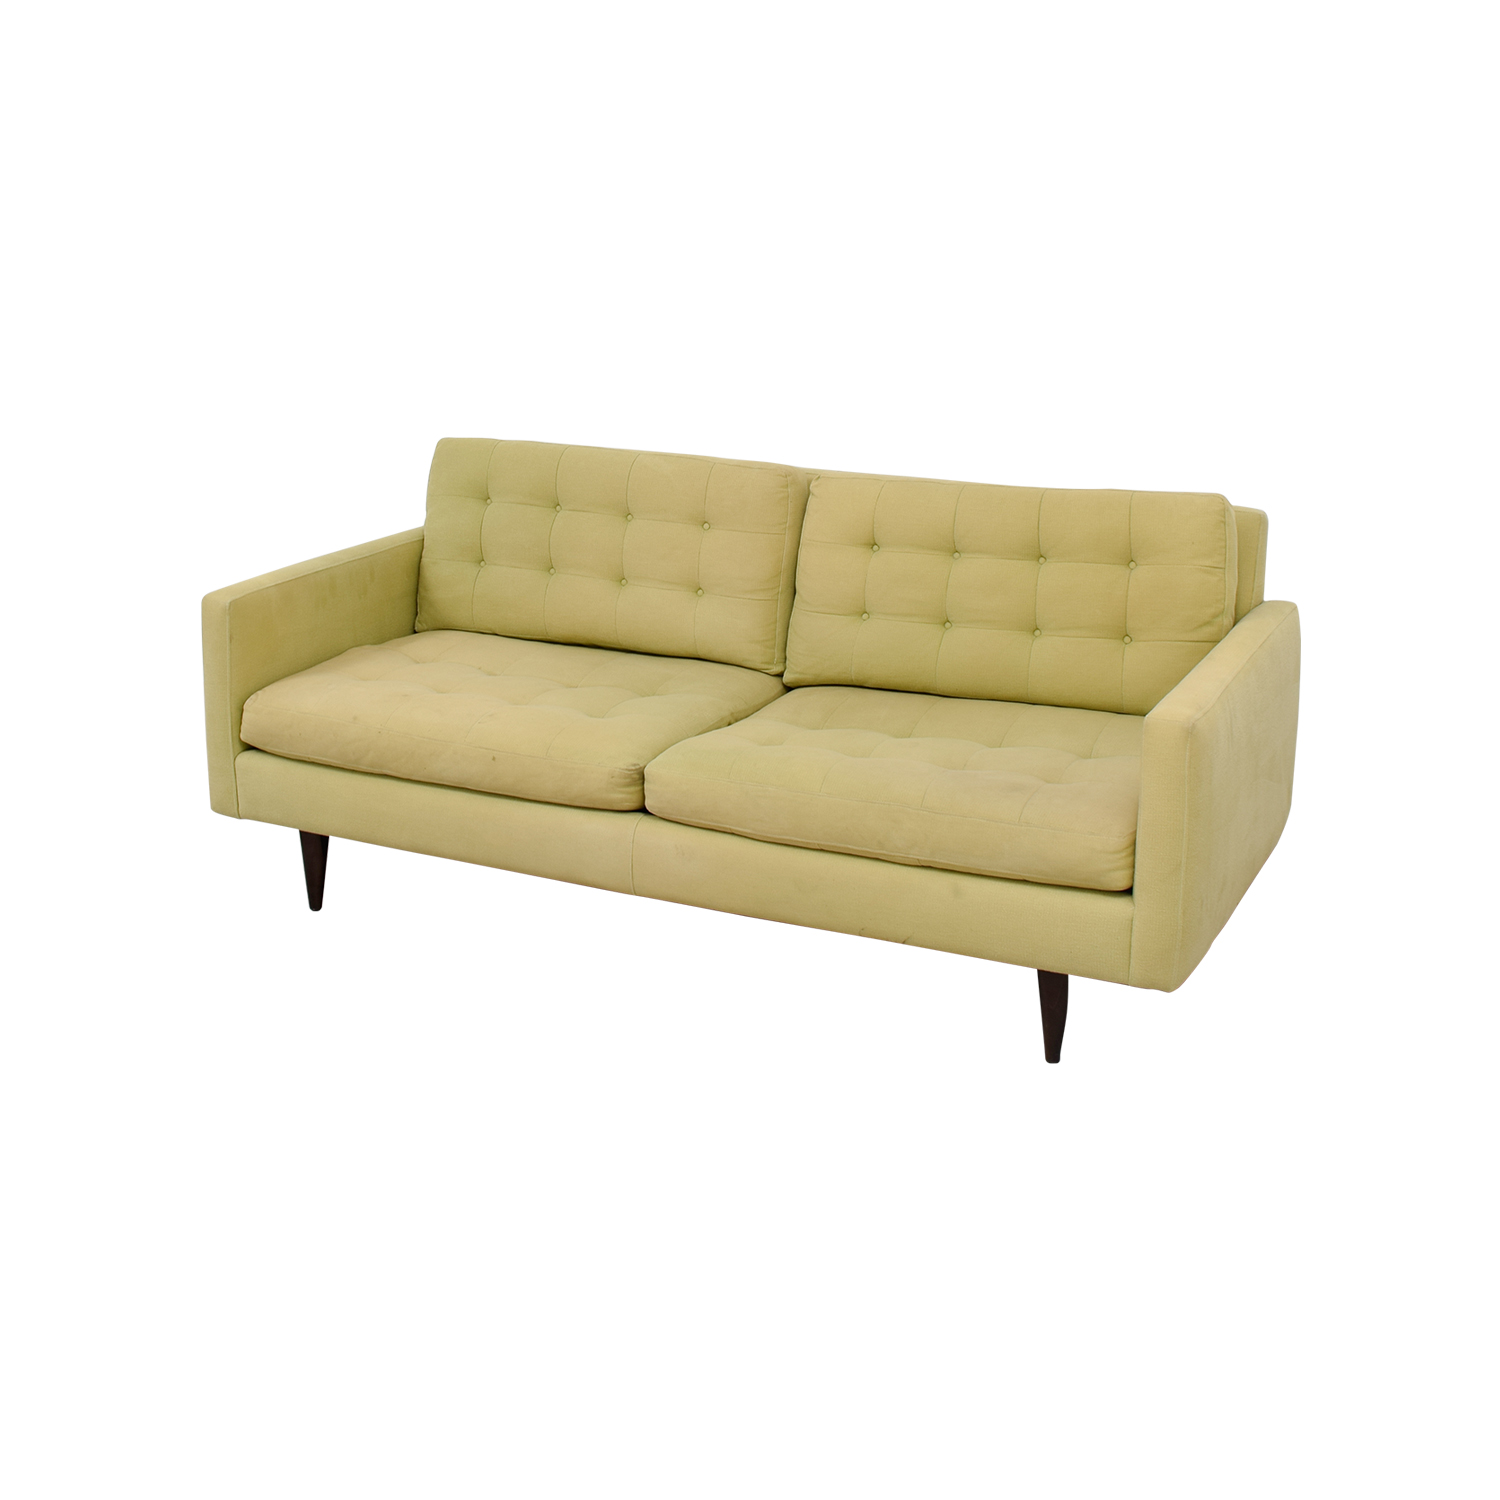 crate and barrel leather sofa bed west elm york dimensions 77 off petrie pale green